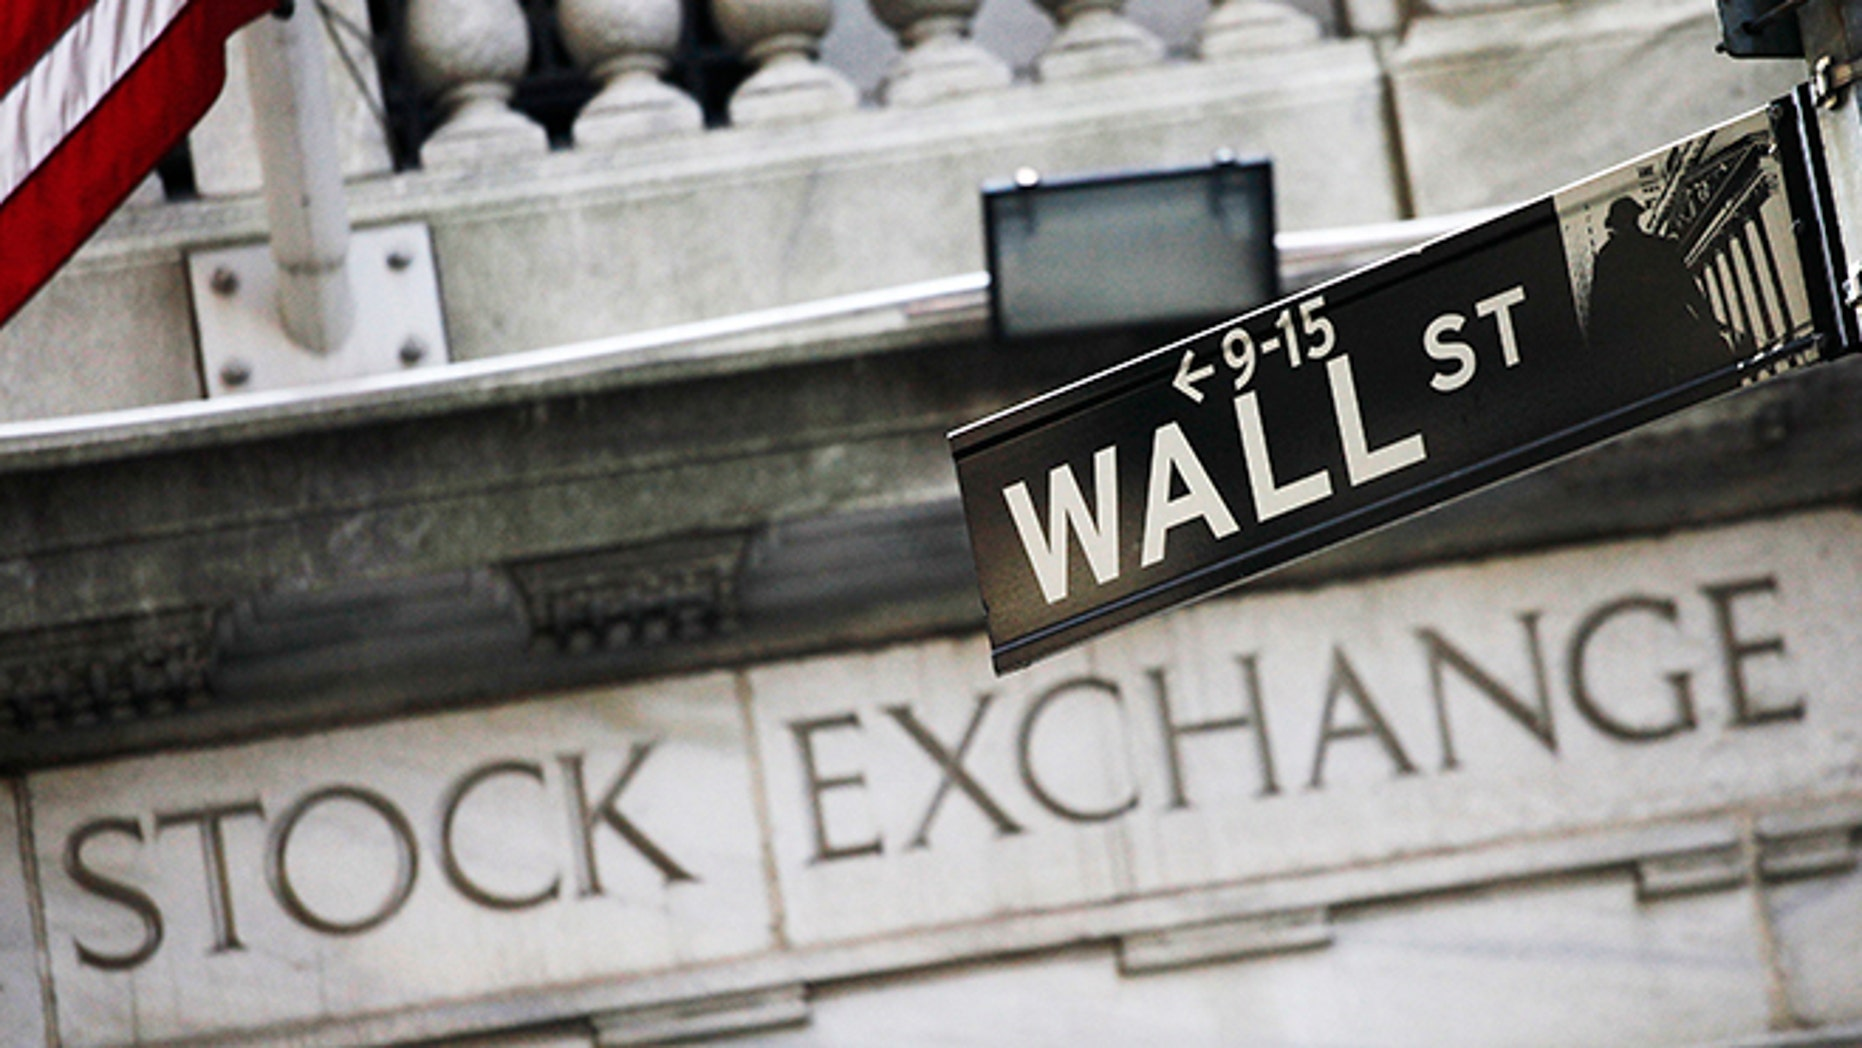 FILE - This July 16, 2013, file photo, shows a Wall Street street sign outside the New York Stock Exchange. U.S. stocks edged mostly lower in midday trading Thursday, Nov. 19, 2015, as traders weighed a mix of company earnings news. Health care stocks were among the biggest decliners after UnitedHealth Group cut its earnings forecast. Payments company Square soared in its market debut. (AP Photo/Mark Lennihan, File)